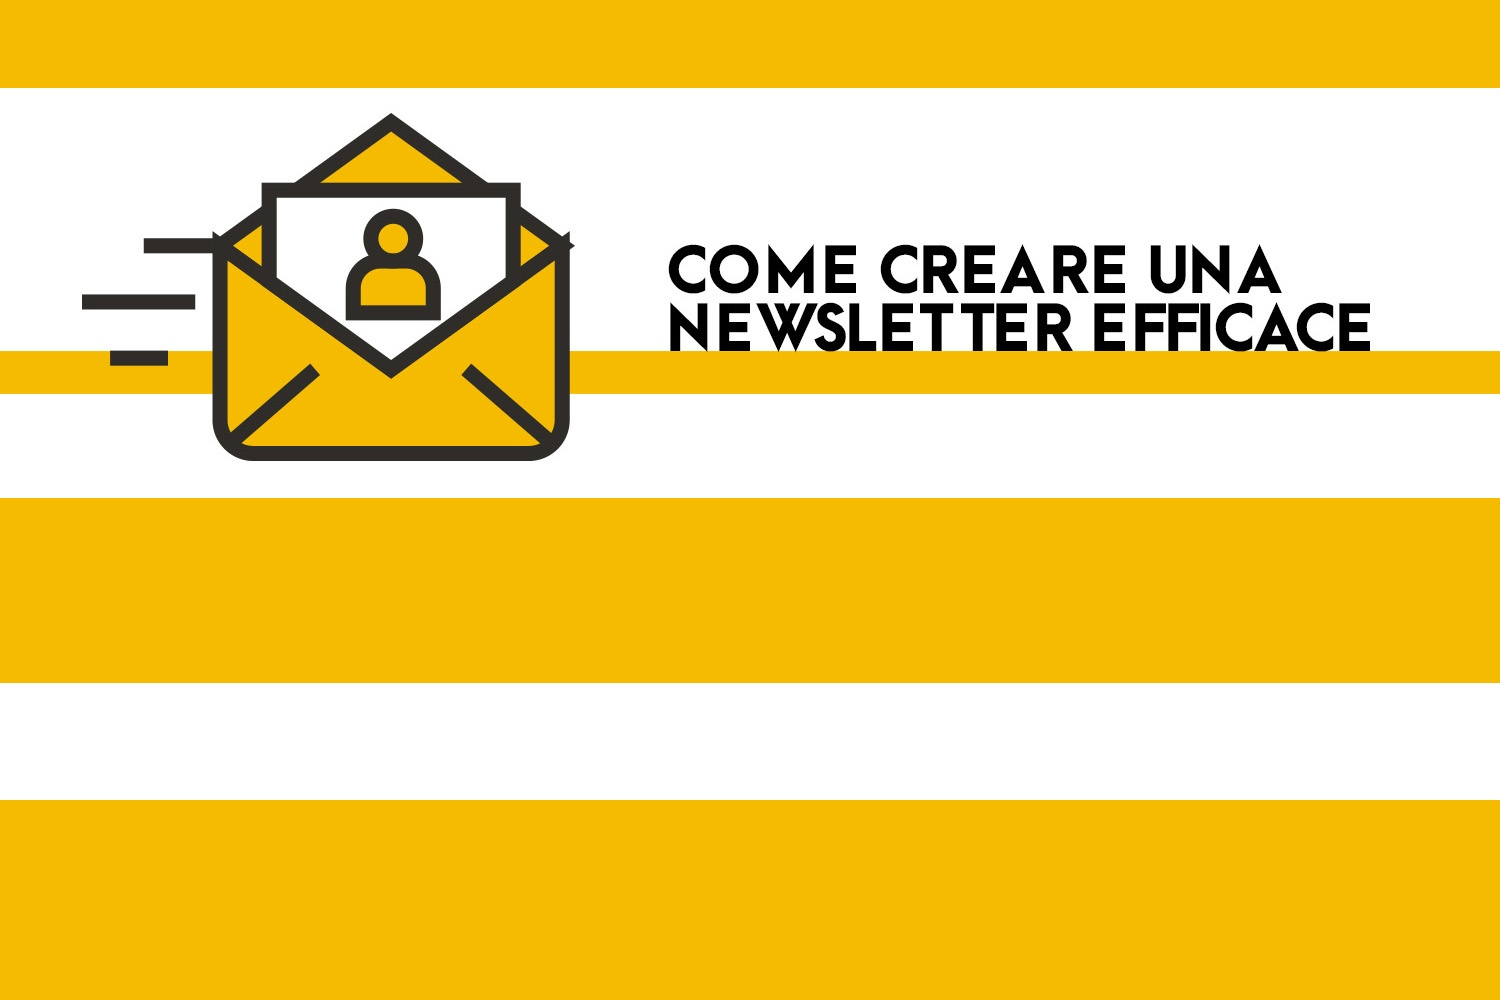 Le guide di OFG Advertising: costruire una newsletter efficace